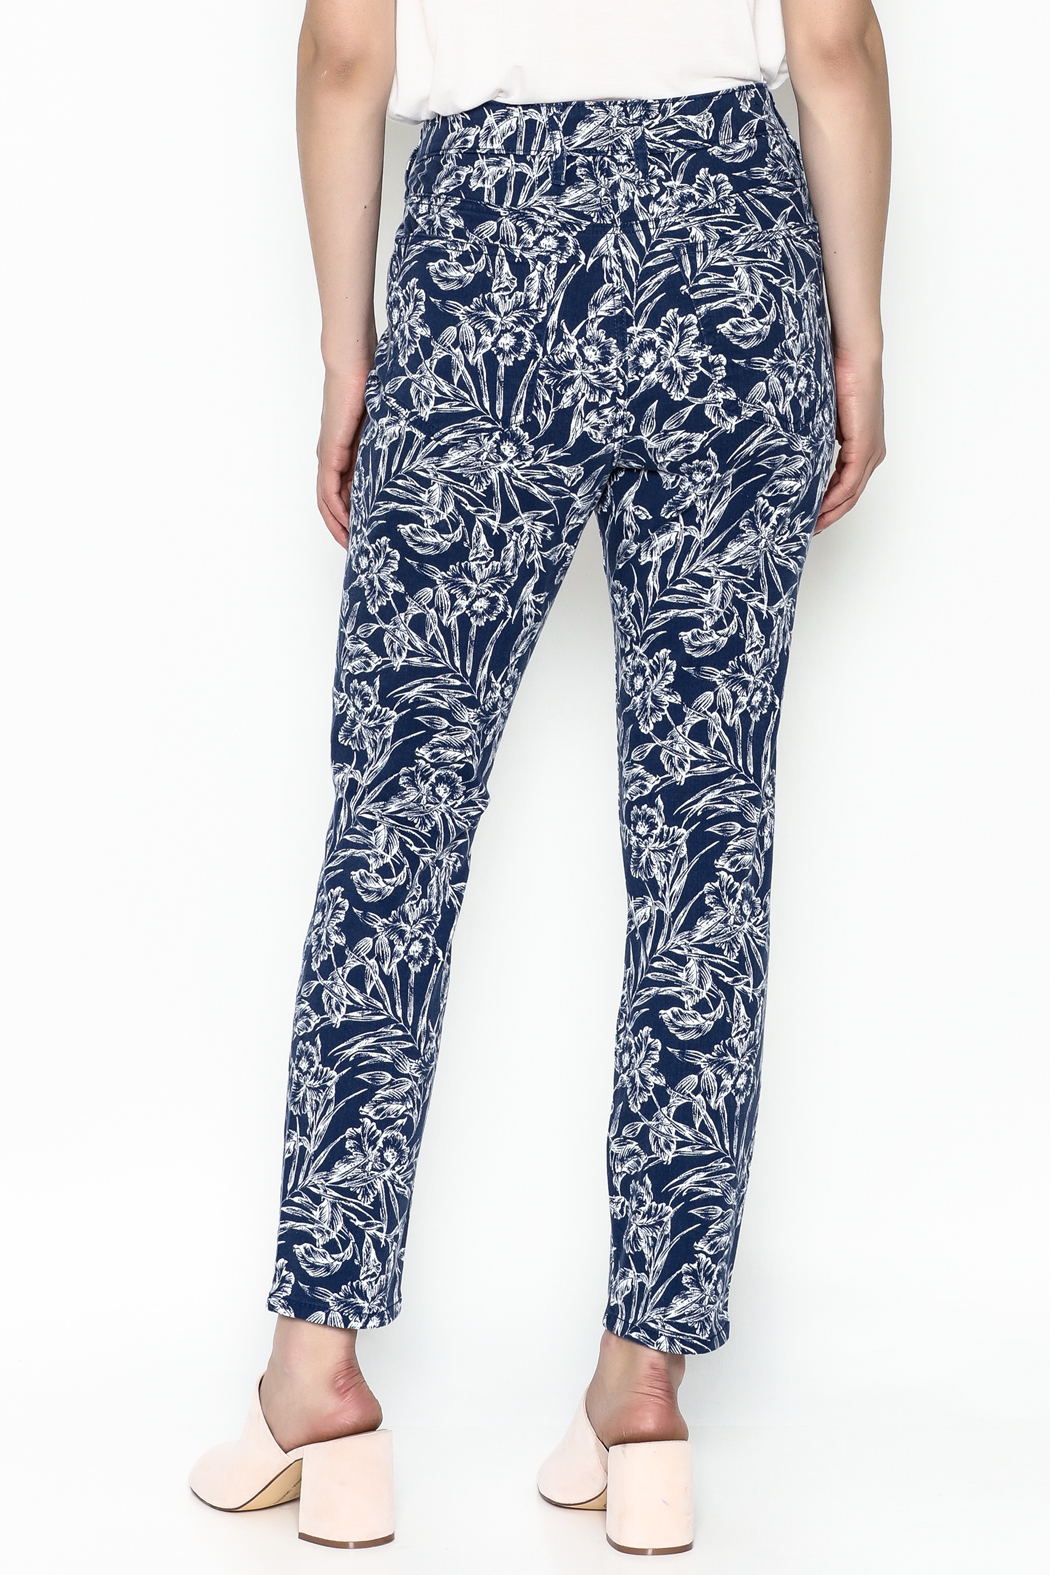 Tommy Bahama Hibiscus Print Jeans - Back Cropped Image